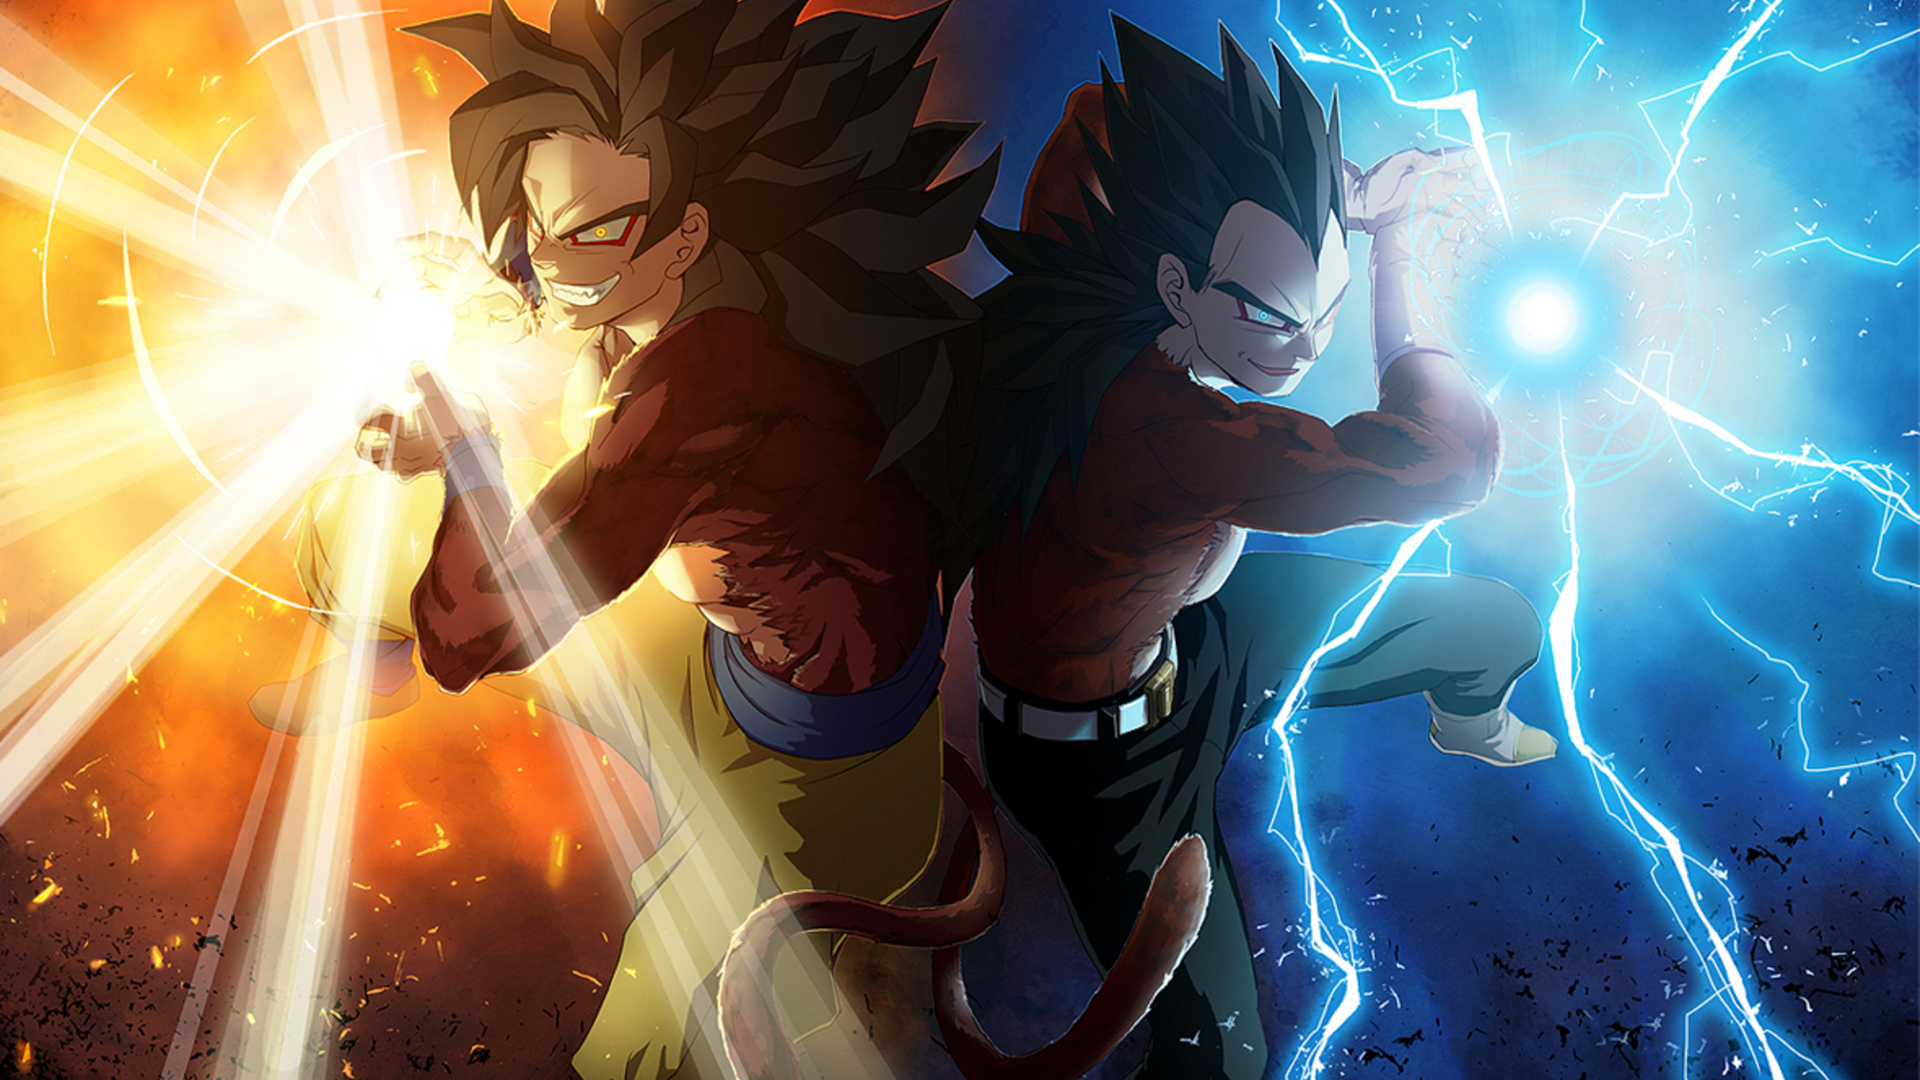 Goku-Vegeta-Coolness-wallpaper-wpc9005556